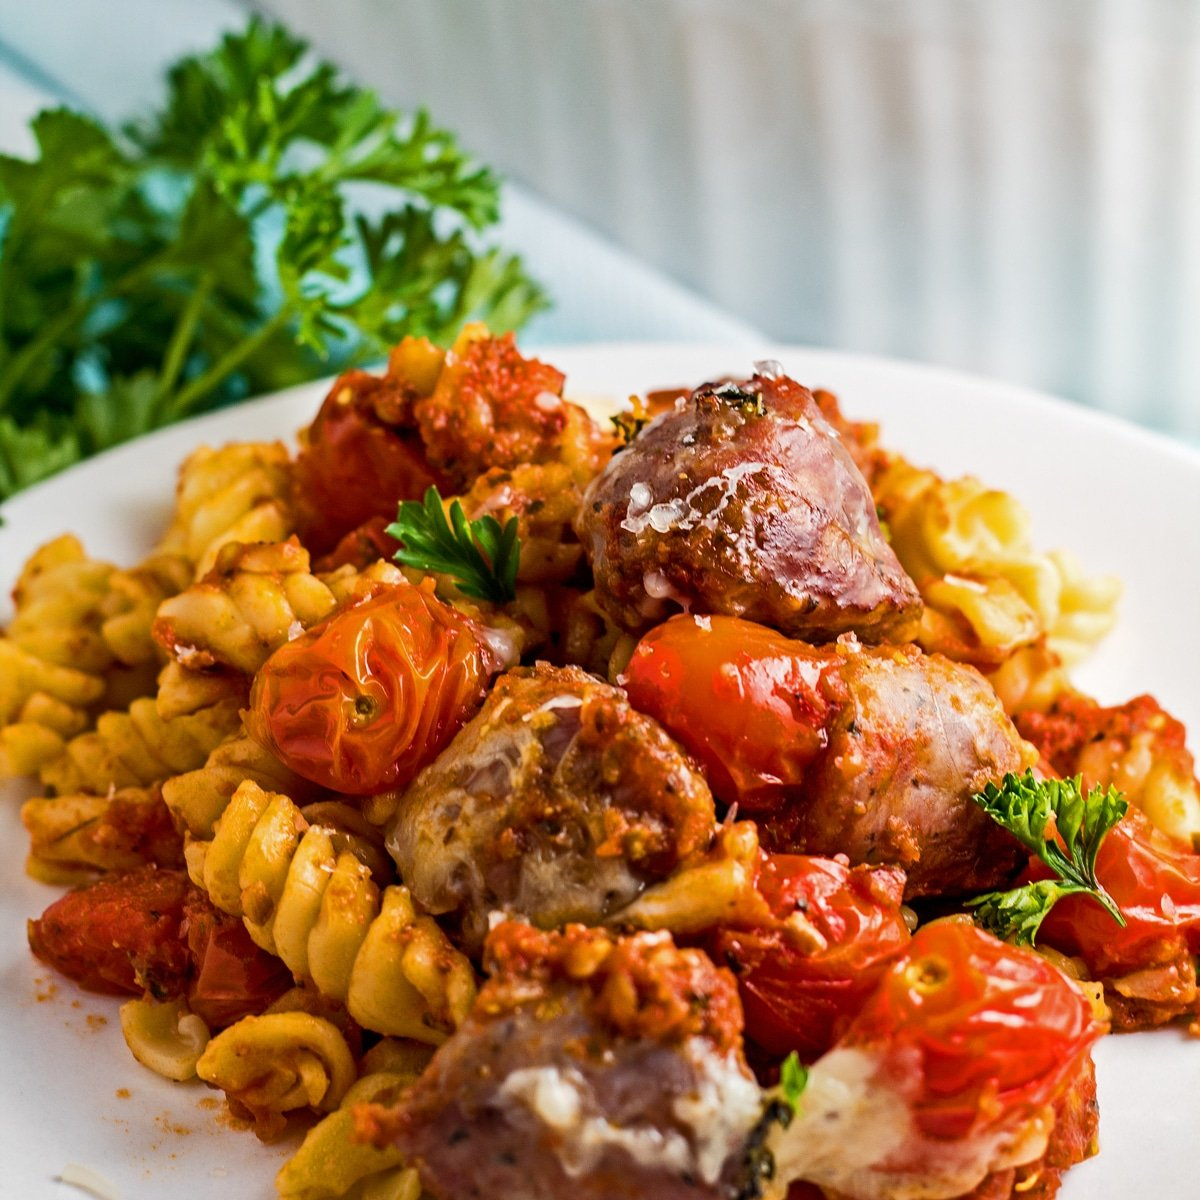 Large square angled side view of the Italian Sausage Bake served on white plate.